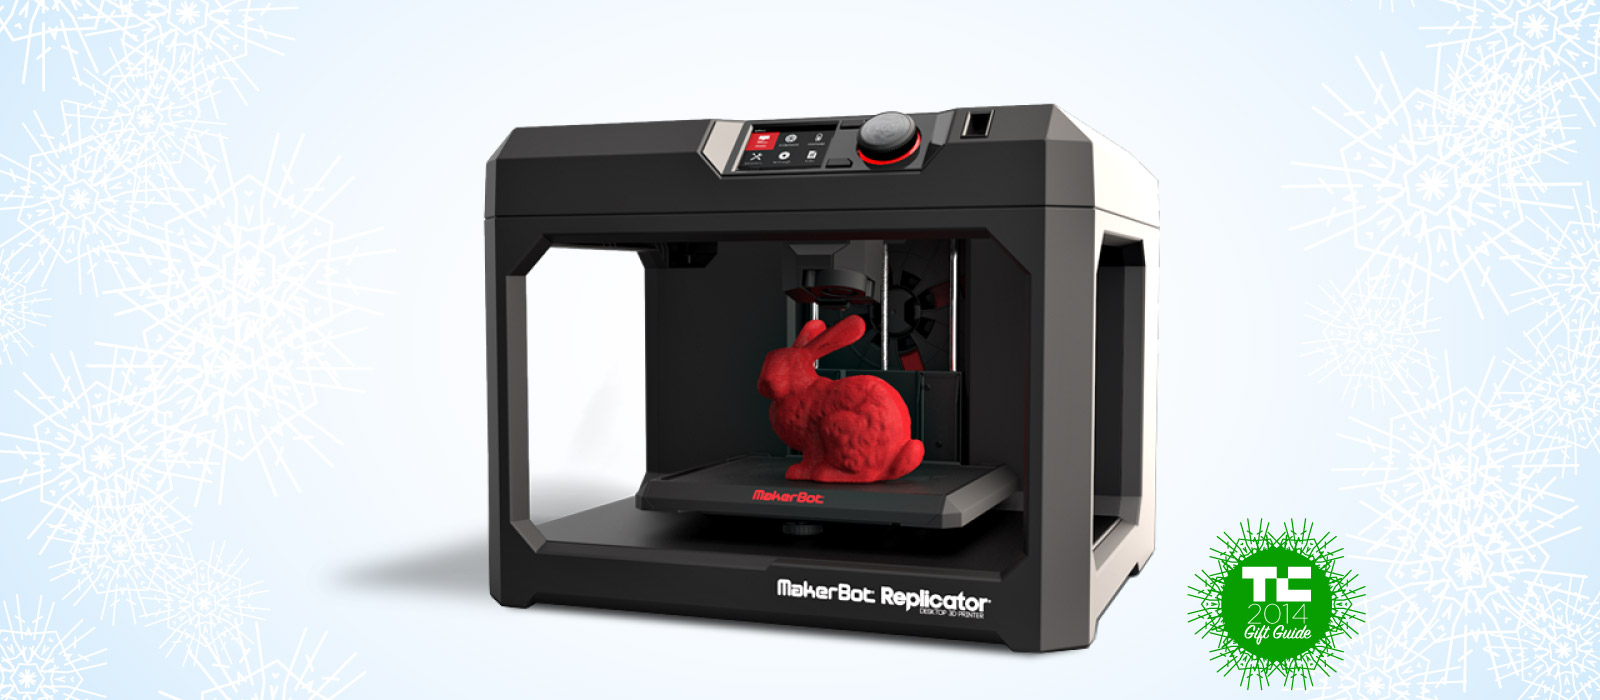 makerbot-giftguide14